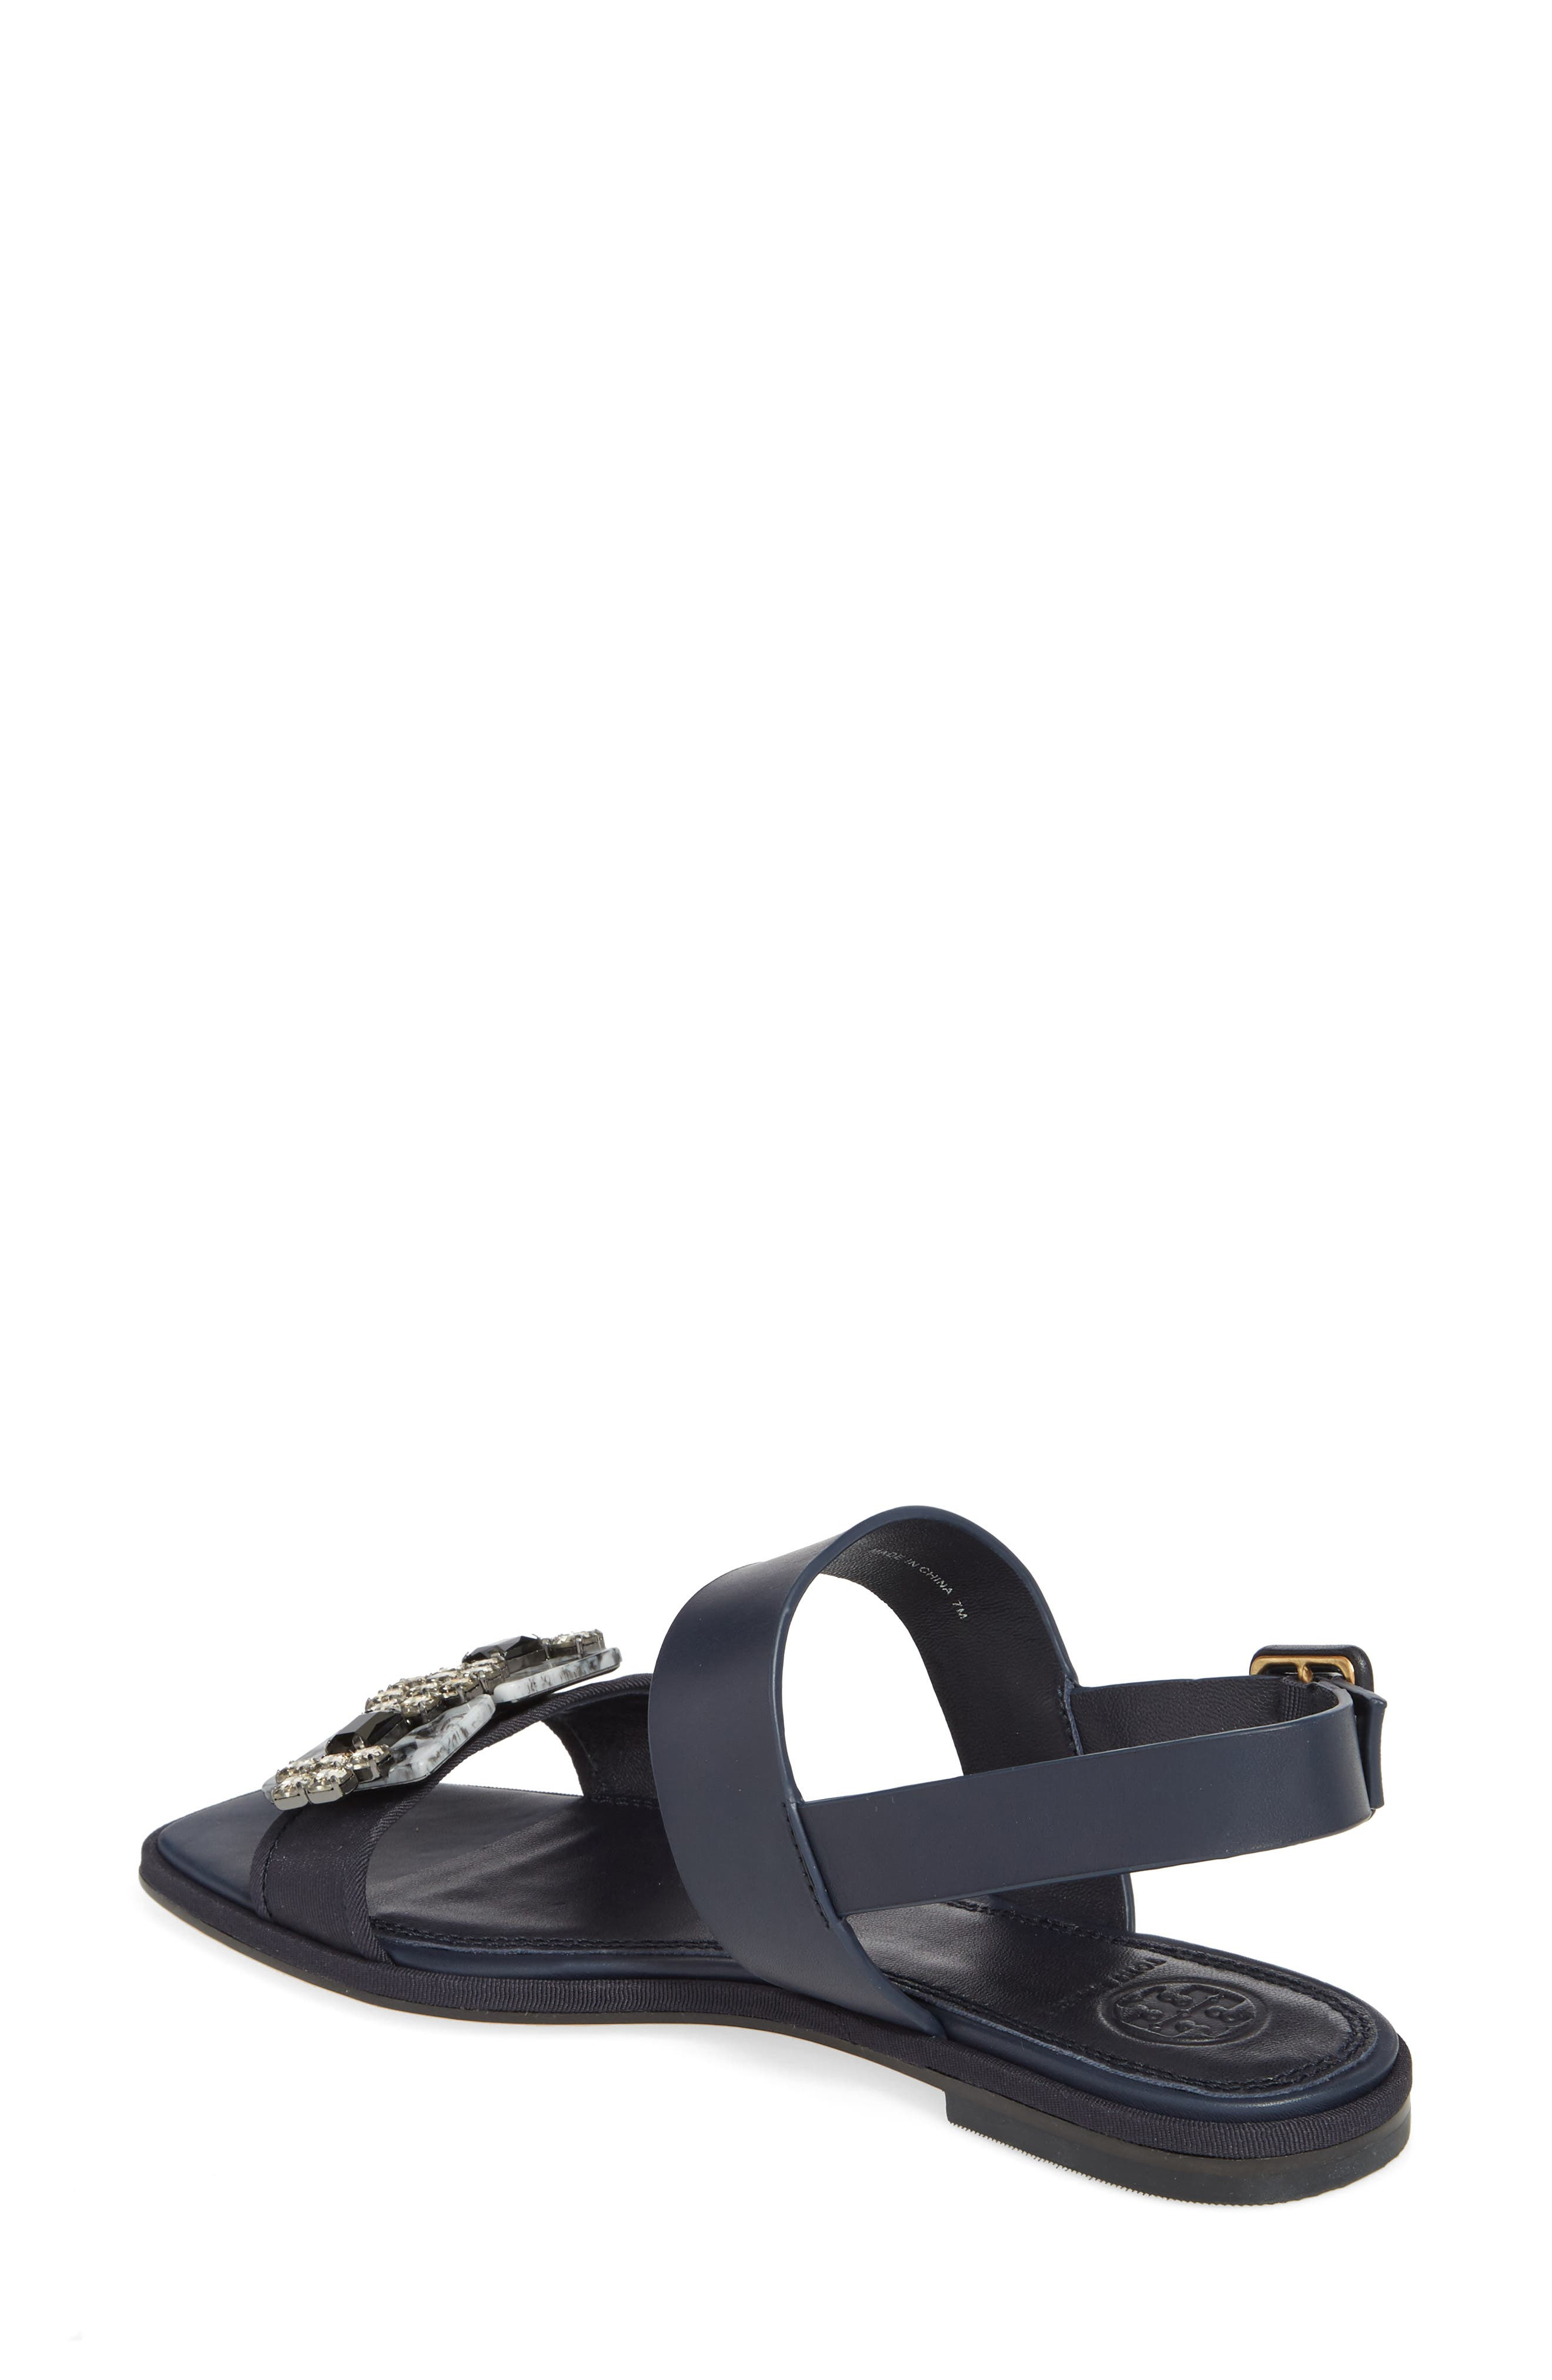 Delaney Embellished Double Strap Sandal,                             Alternate thumbnail 2, color,                             Perfect Navy/ Perfect Navy